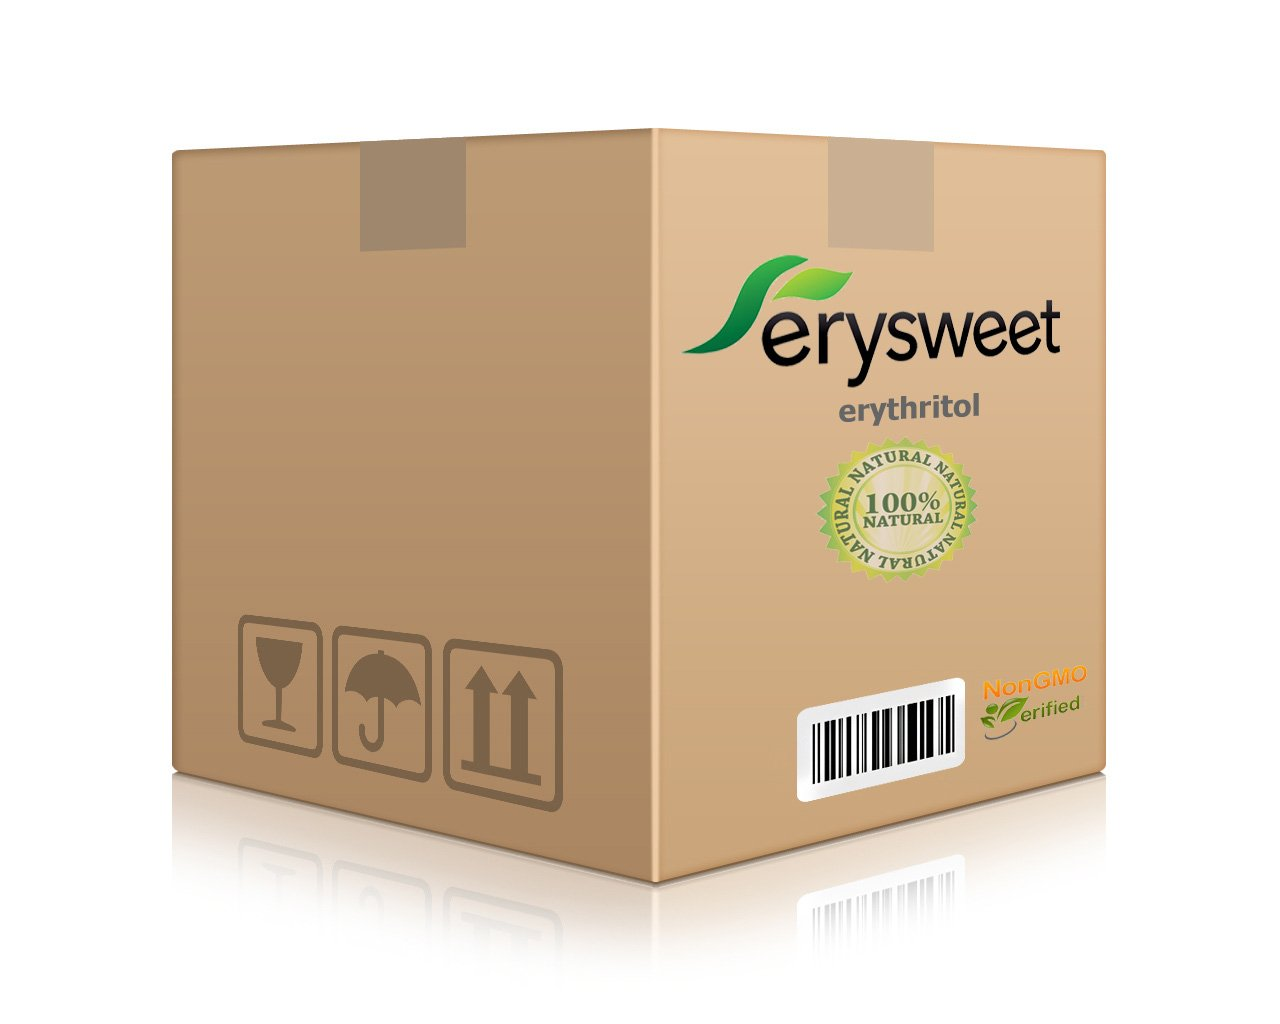 Erysweet Erythritol 20 kg (44lbs) NonGMO Low Carb Sweetener